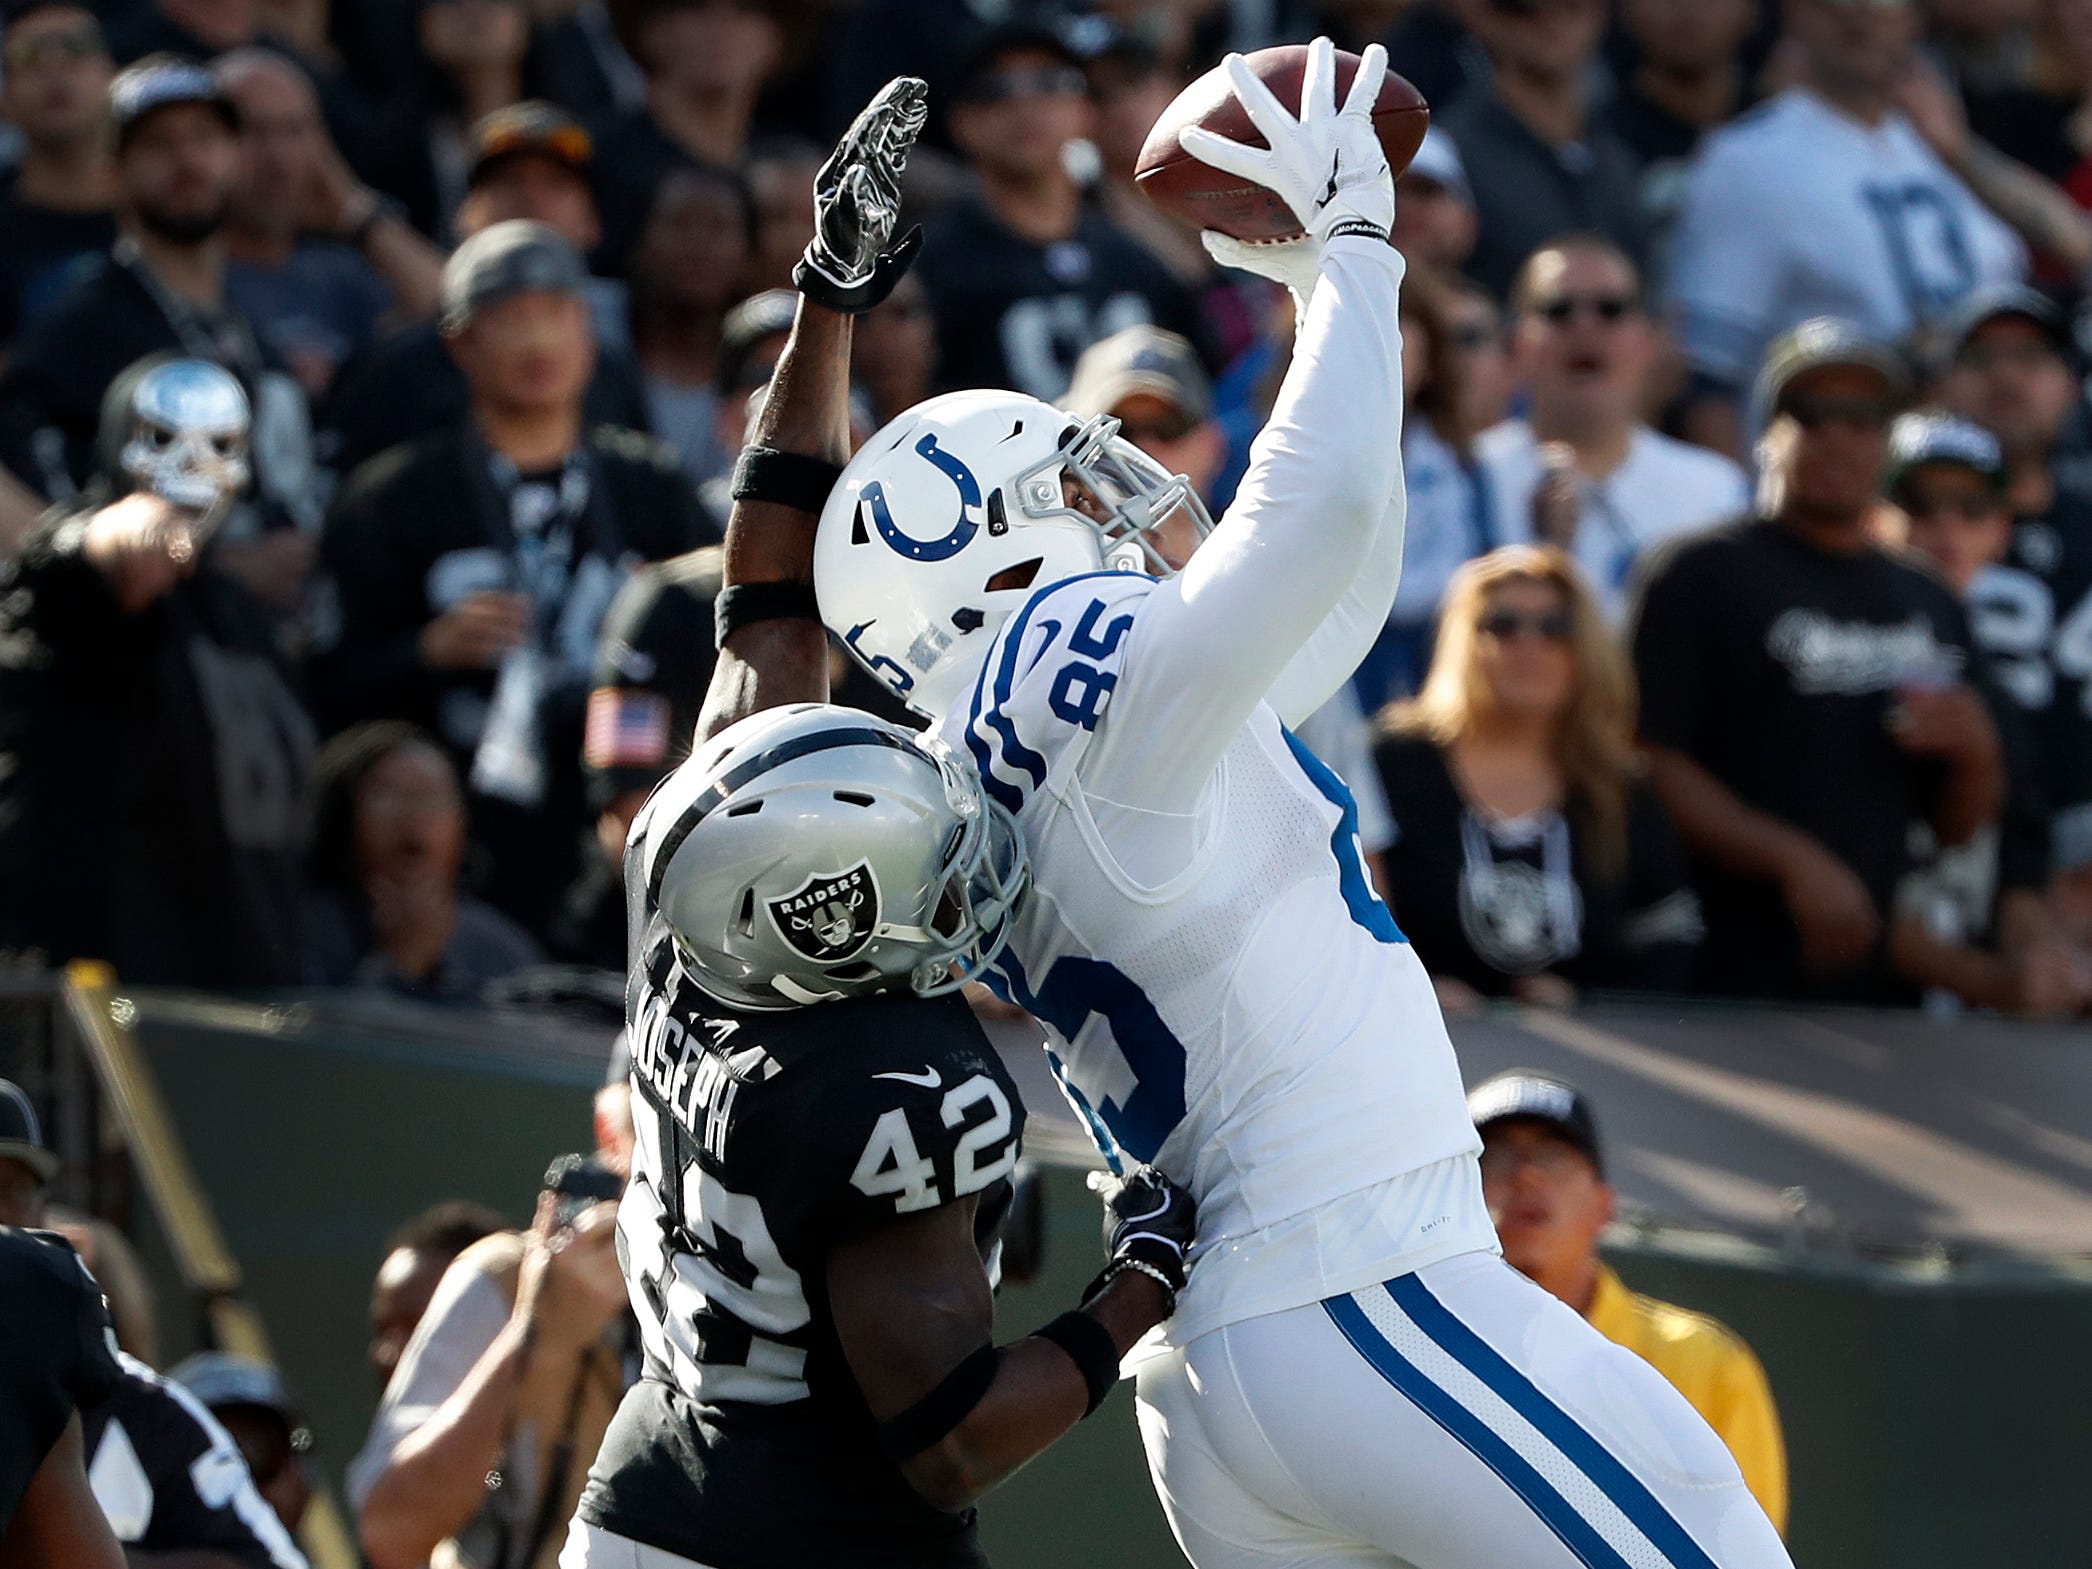 Indianapolis Colts tight end Eric Ebron (85) makes a touchdown catch over Oakland Raiders defensive back Karl Joseph (42) in the second half of their game at Oakland Alameda Coliseum in Oakland, CA., Sunday, Oct 28, 2018.